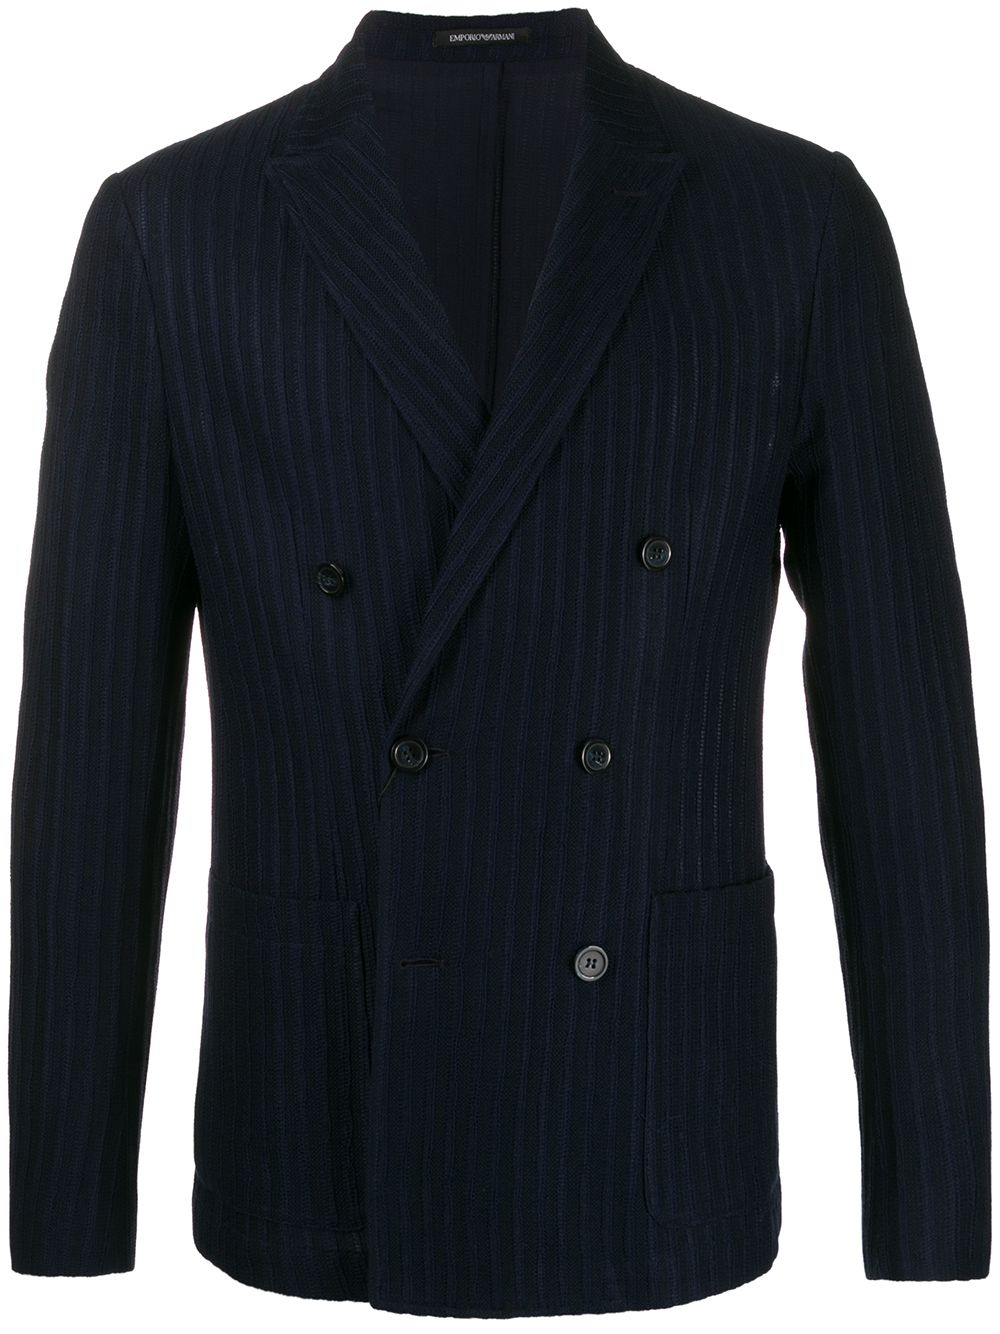 Cotton Double-breasted Jacket